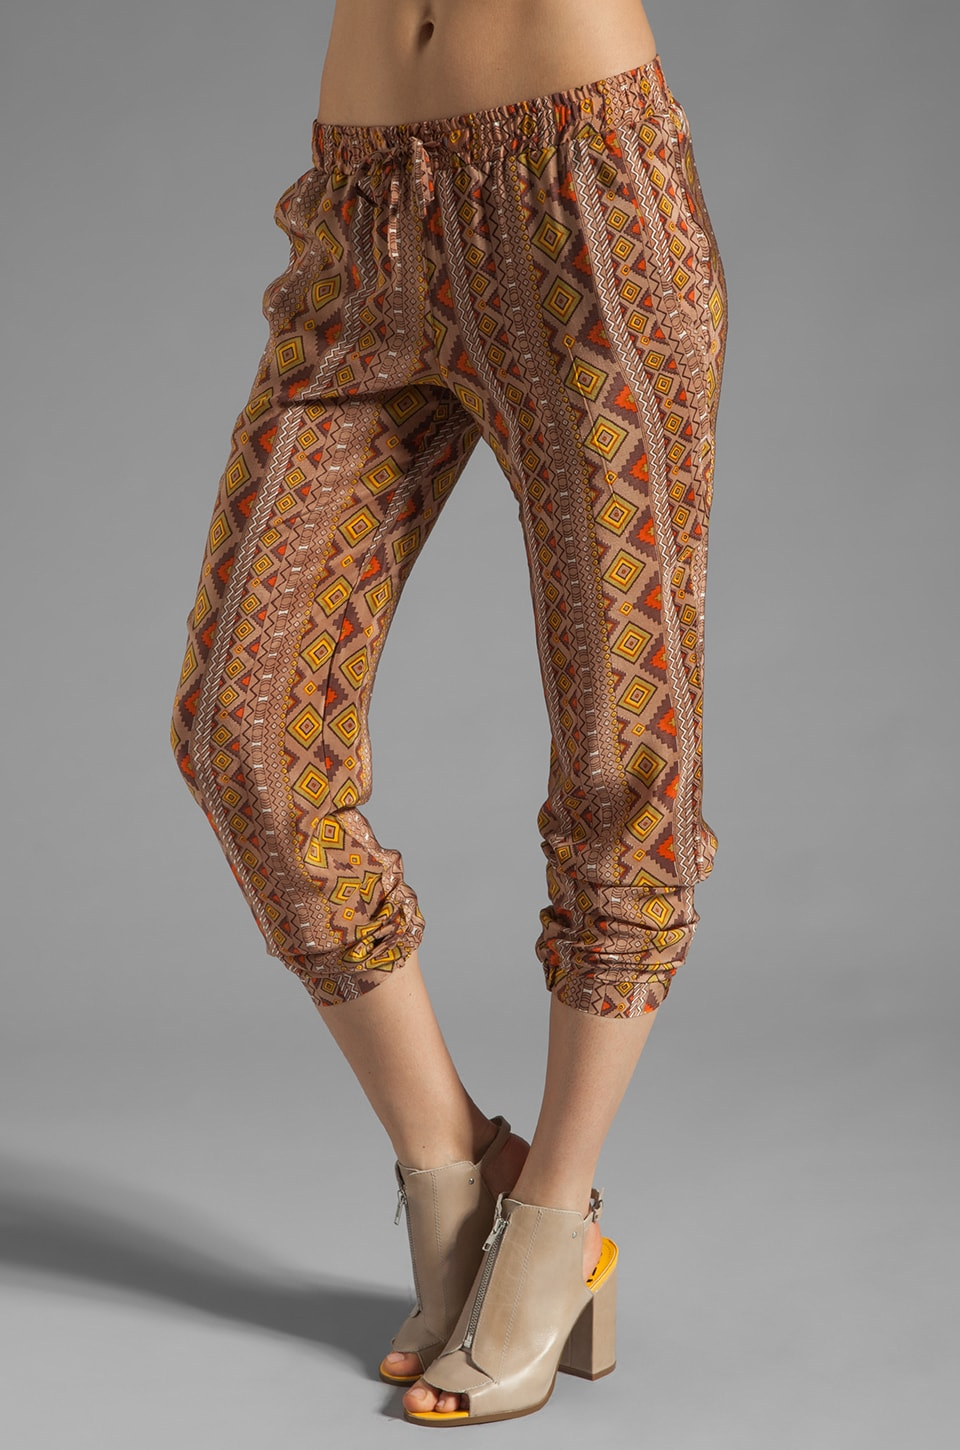 Tolani Lauren Skinny Pant in Brown Ikat